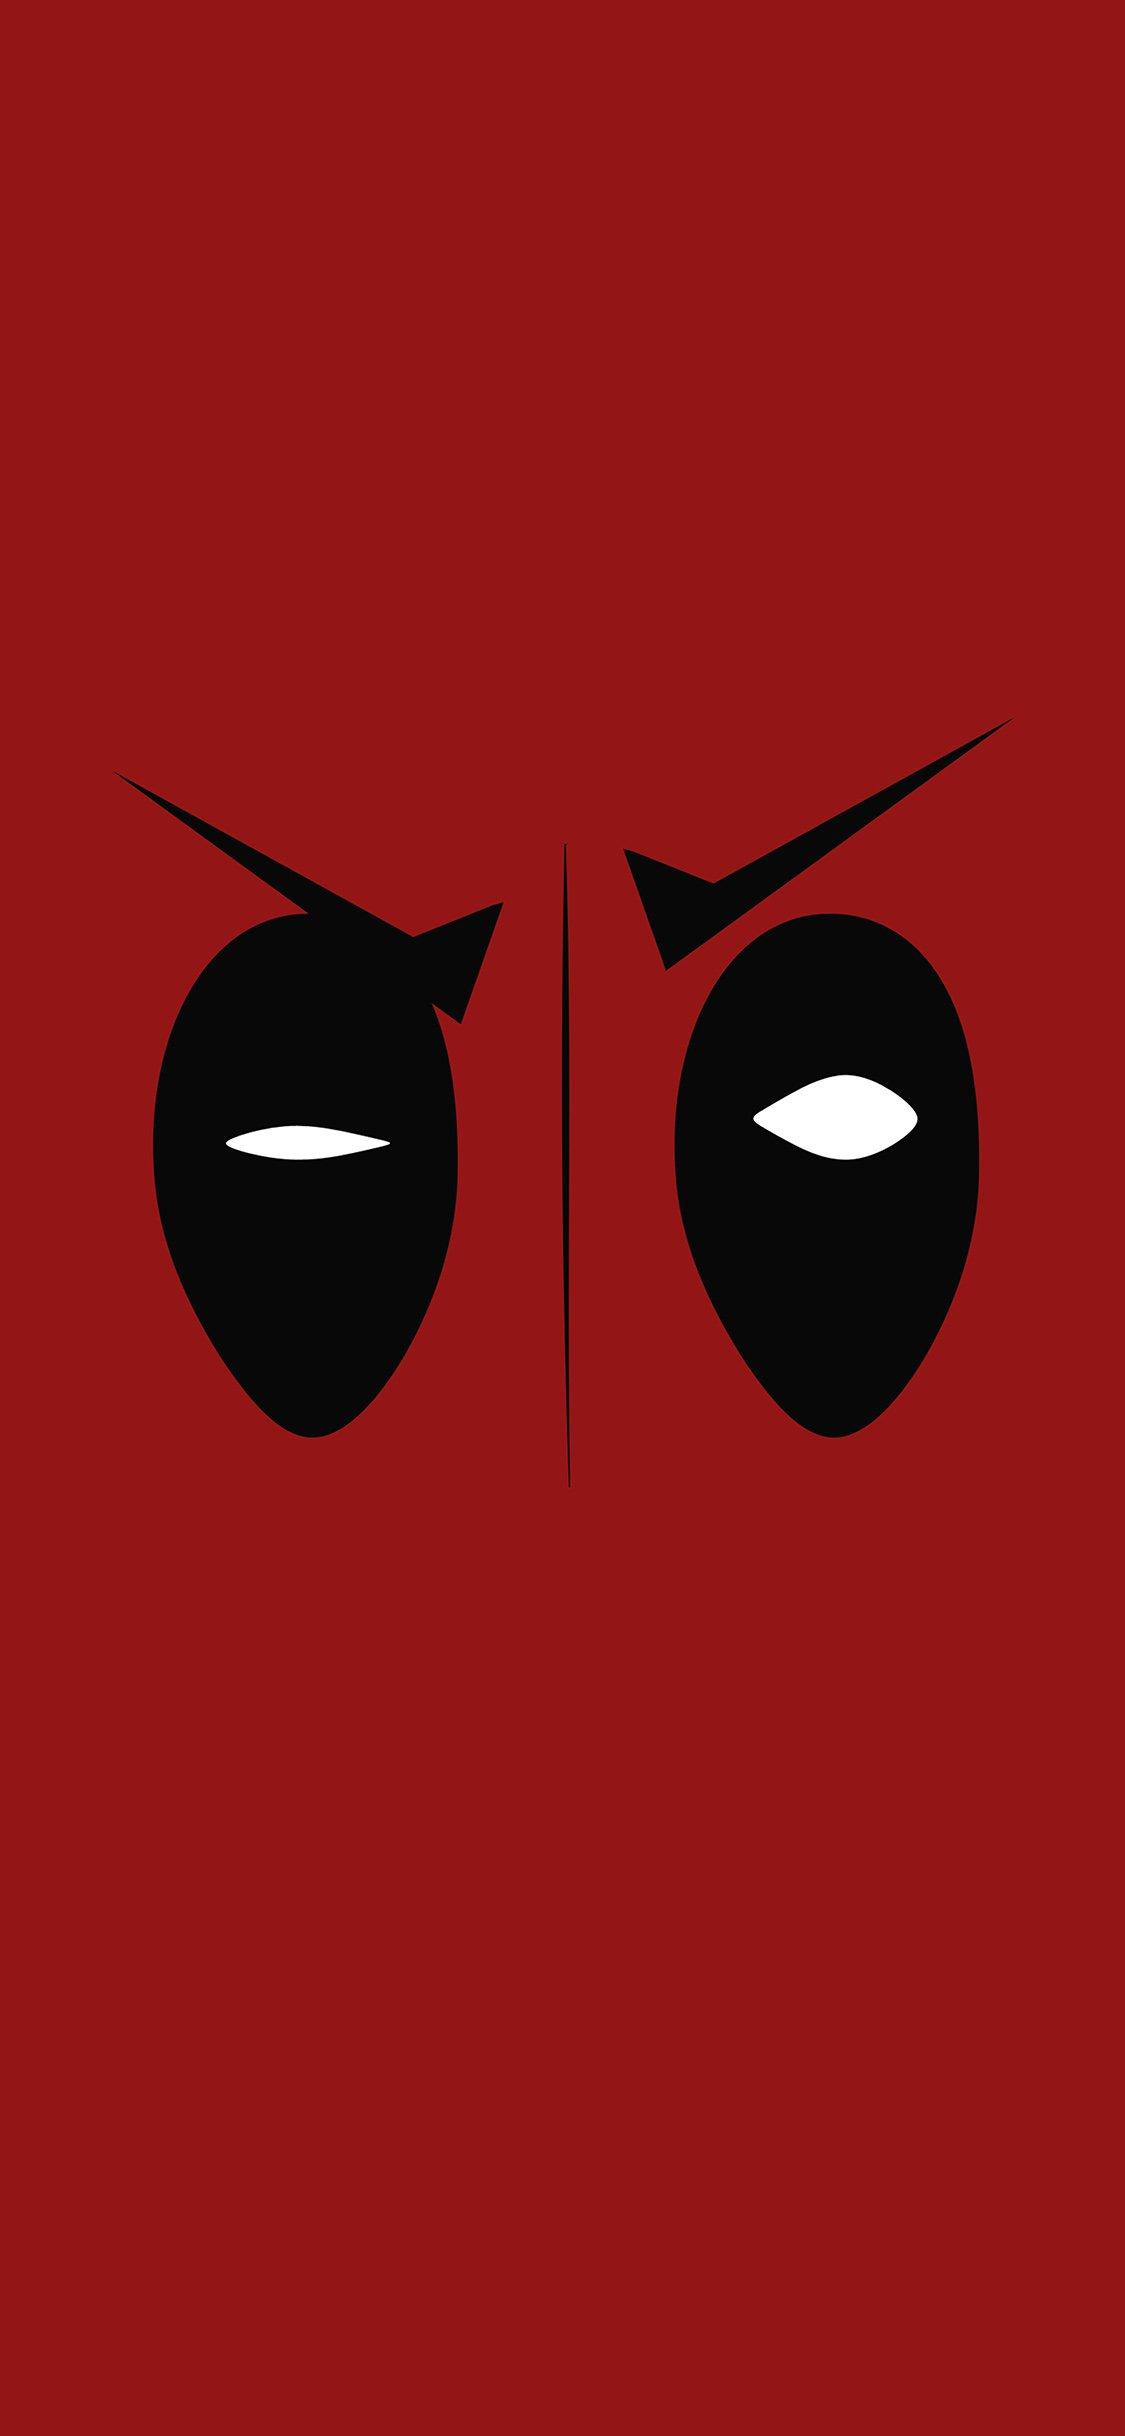 52 Deadpool Iphone 7 Plus Wallpaper On Wallpapersafari